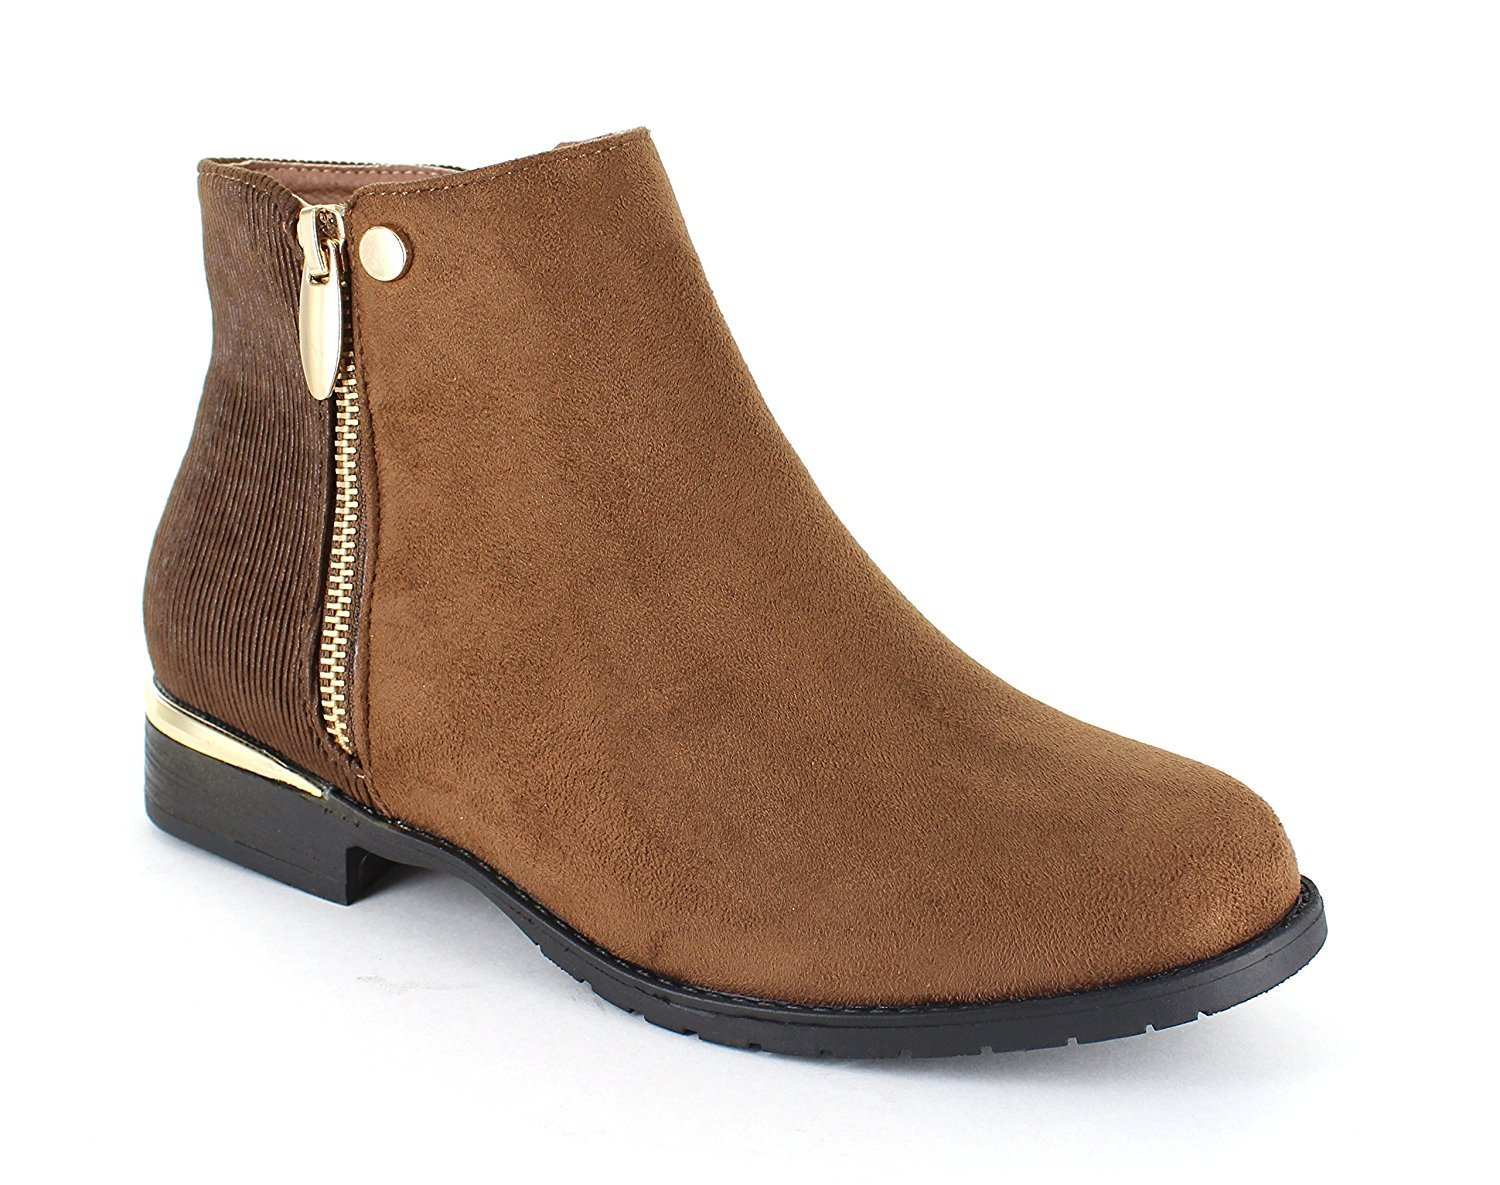 only U Casual Faux Suede Gold Trim Ankle Boots B07F9P76L6 7.5 B(M) US|Cognac